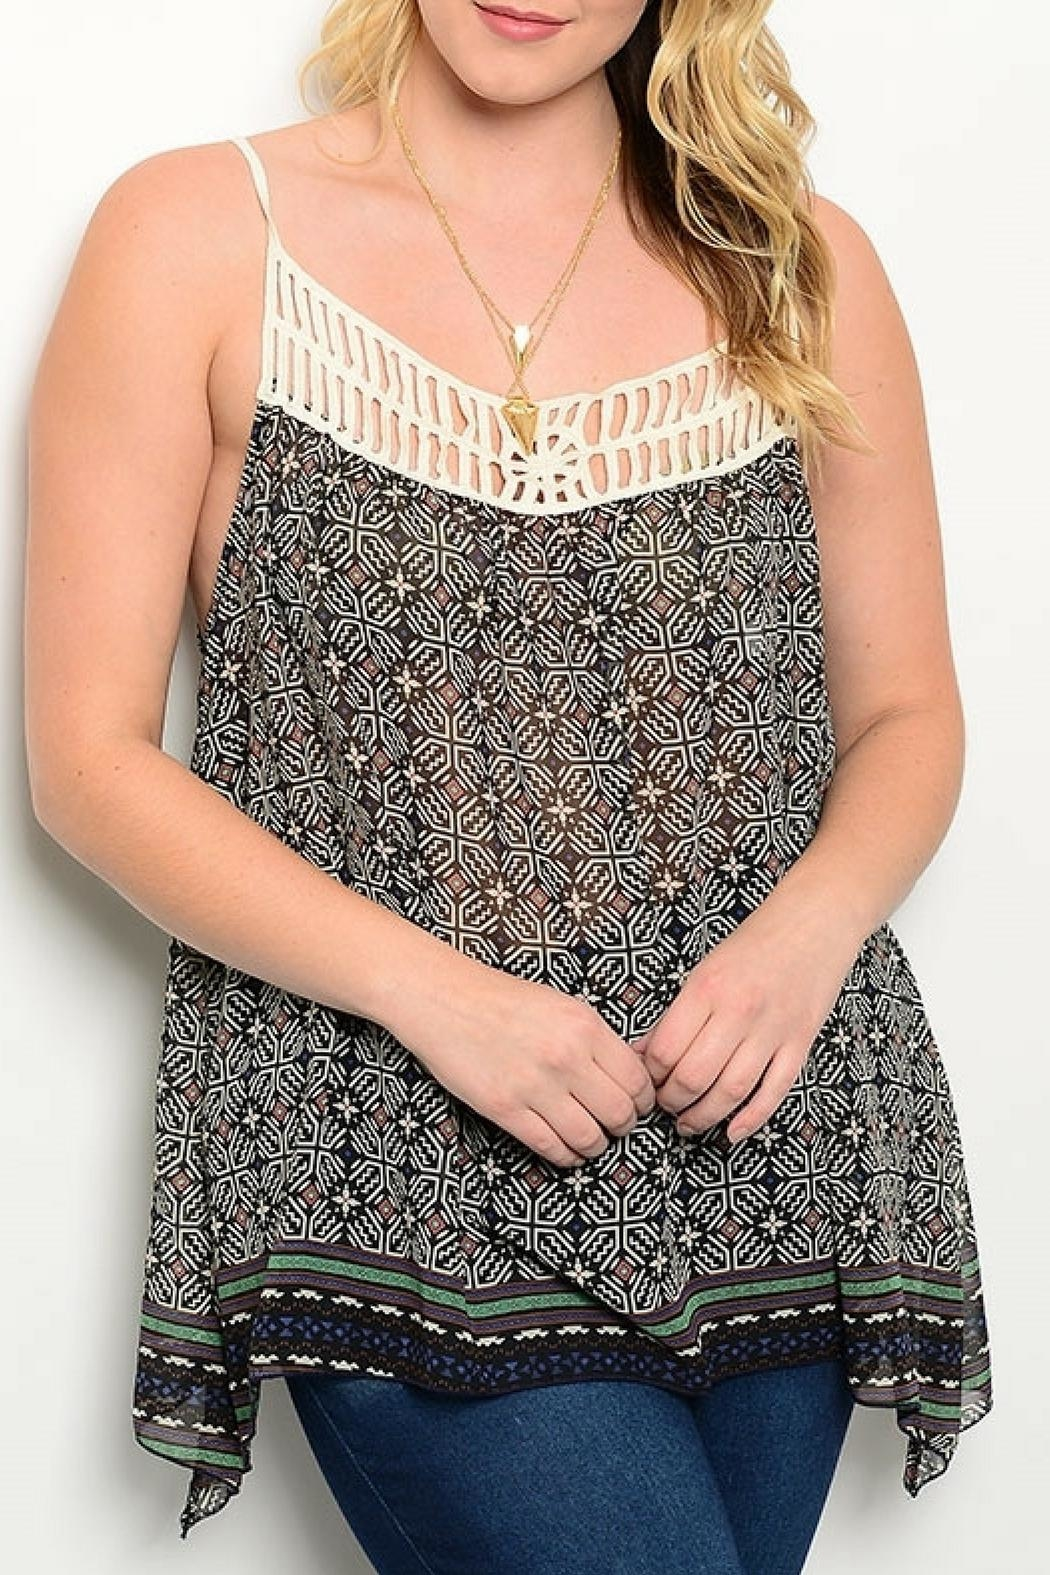 Shop The Trends  Black Tribal Top - Main Image